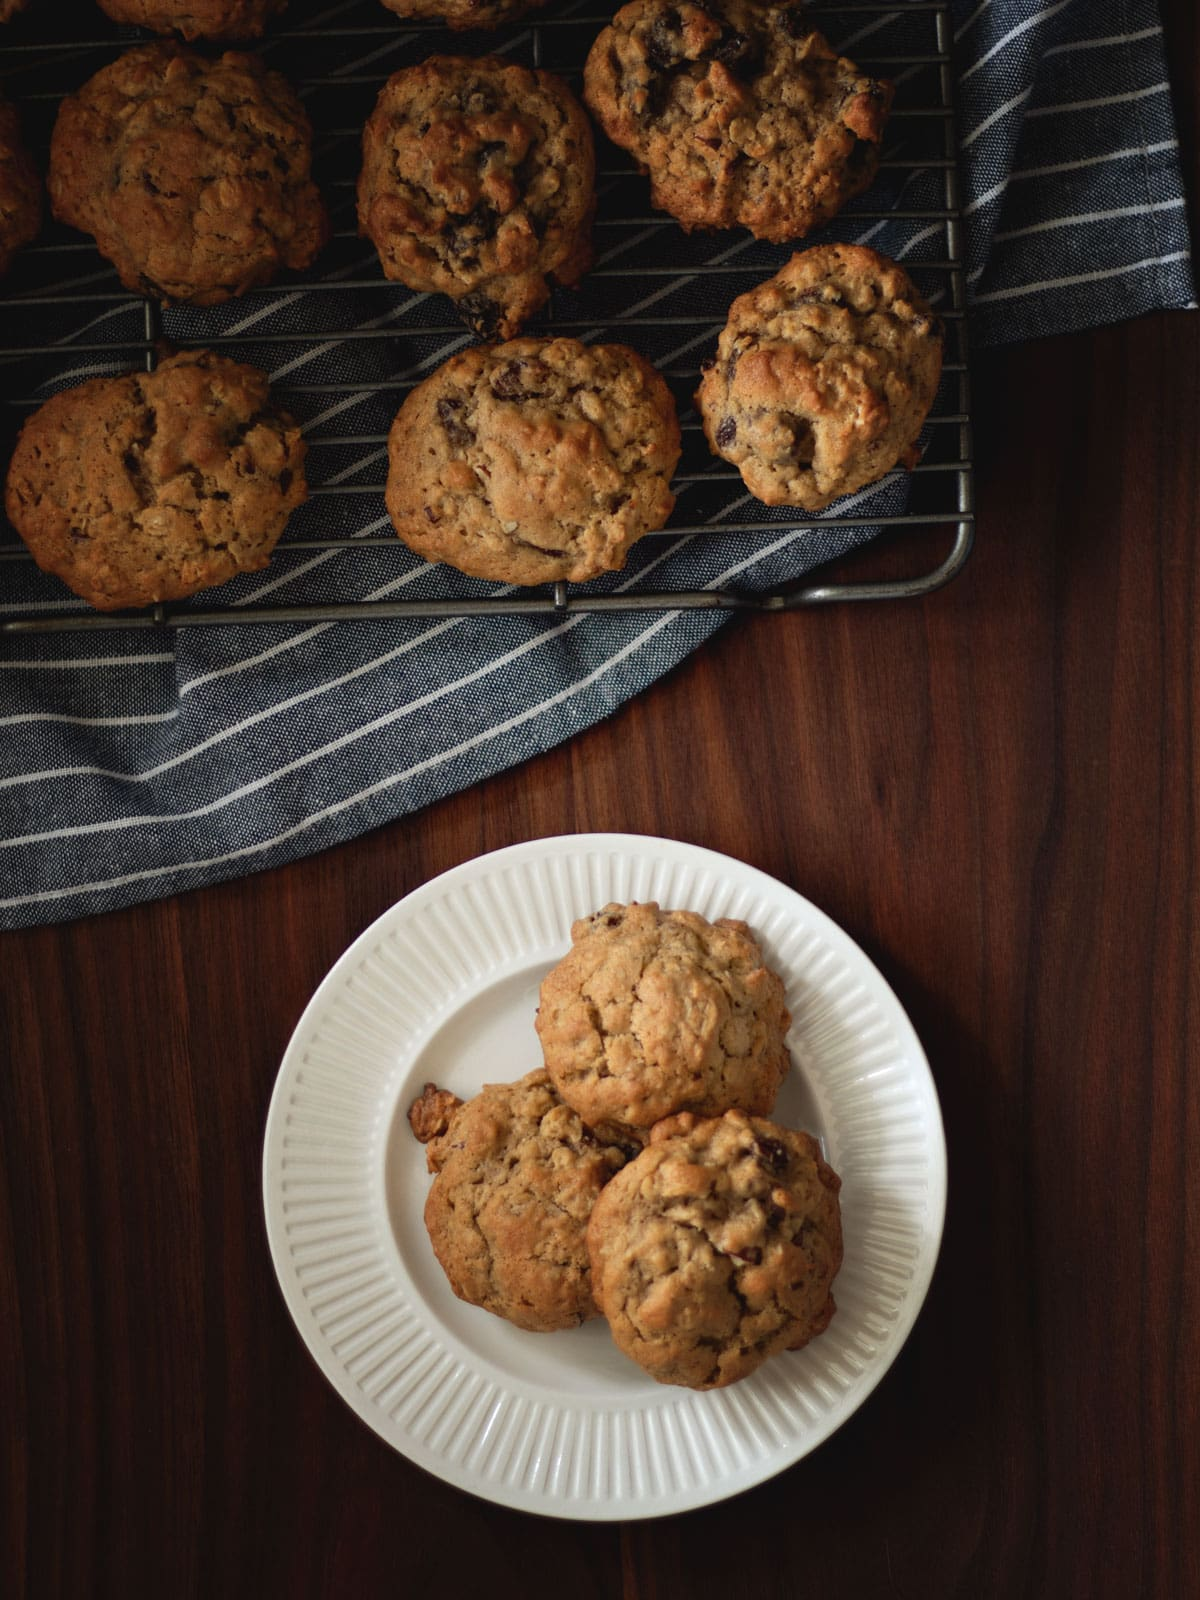 Soft and delicious Old-Fashioned Oatmeal Raisin Cookies. I grew up eating these, and still love them to this day.